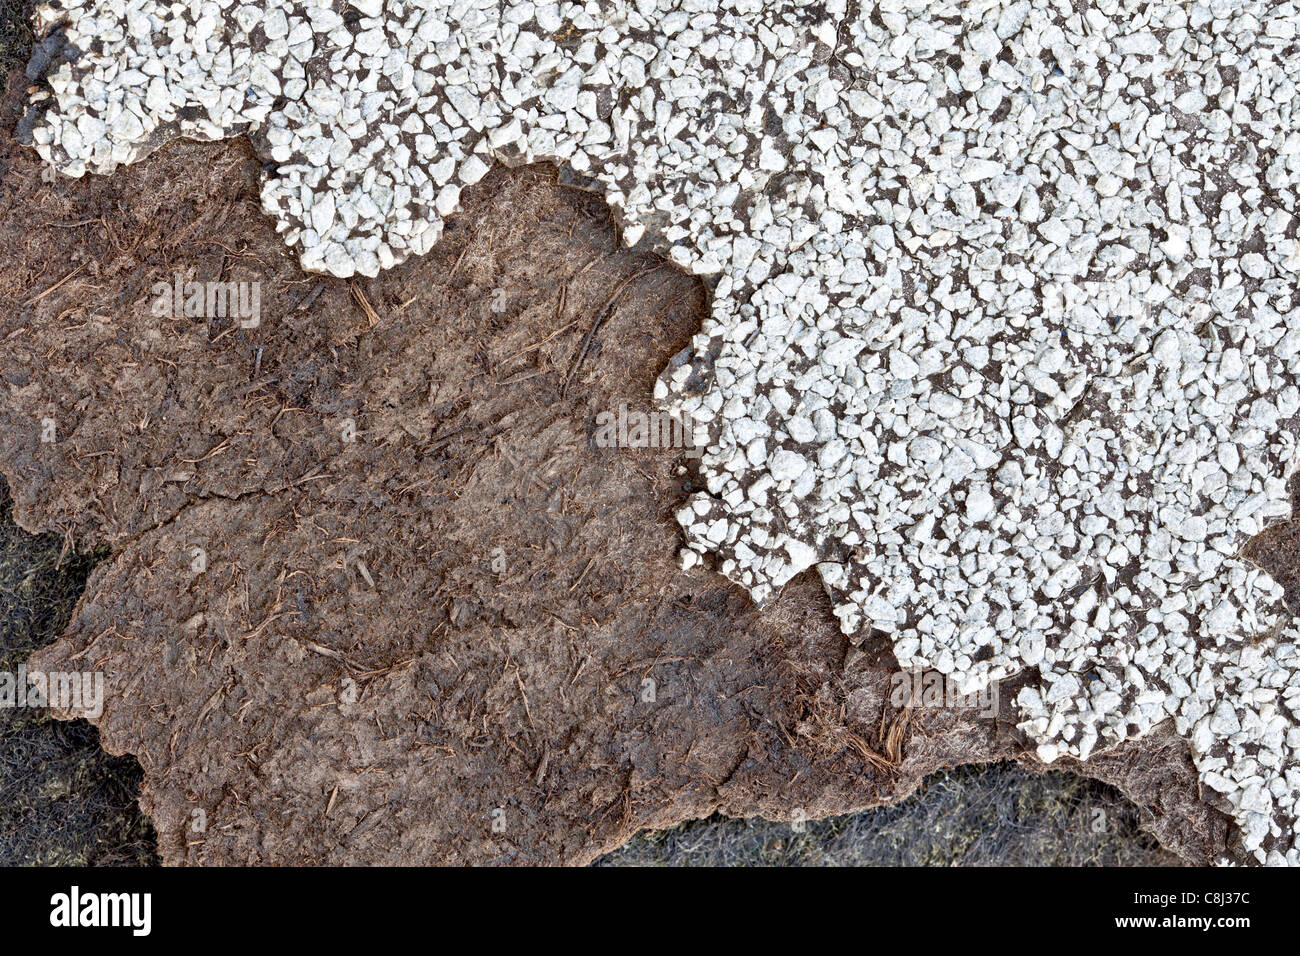 Asphalt shingle impregnated with asbestos fibers, deteriorating from age, weather & environment. - Stock Image